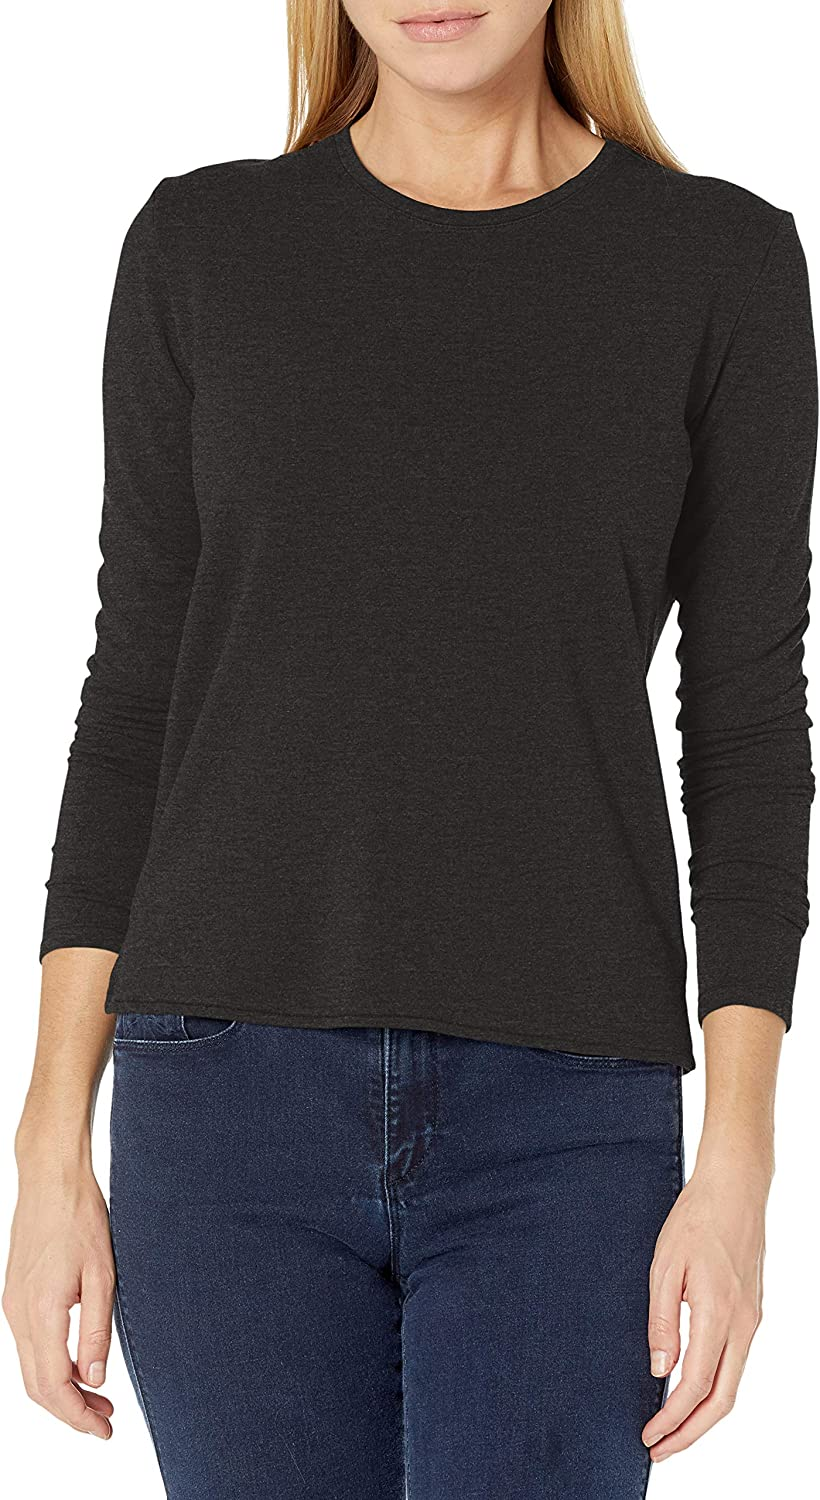 Majestic Filatures Women's French Terry Sleeve Long Crew Challenge the lowest price of Japan ☆ Baltimore Mall Boxy